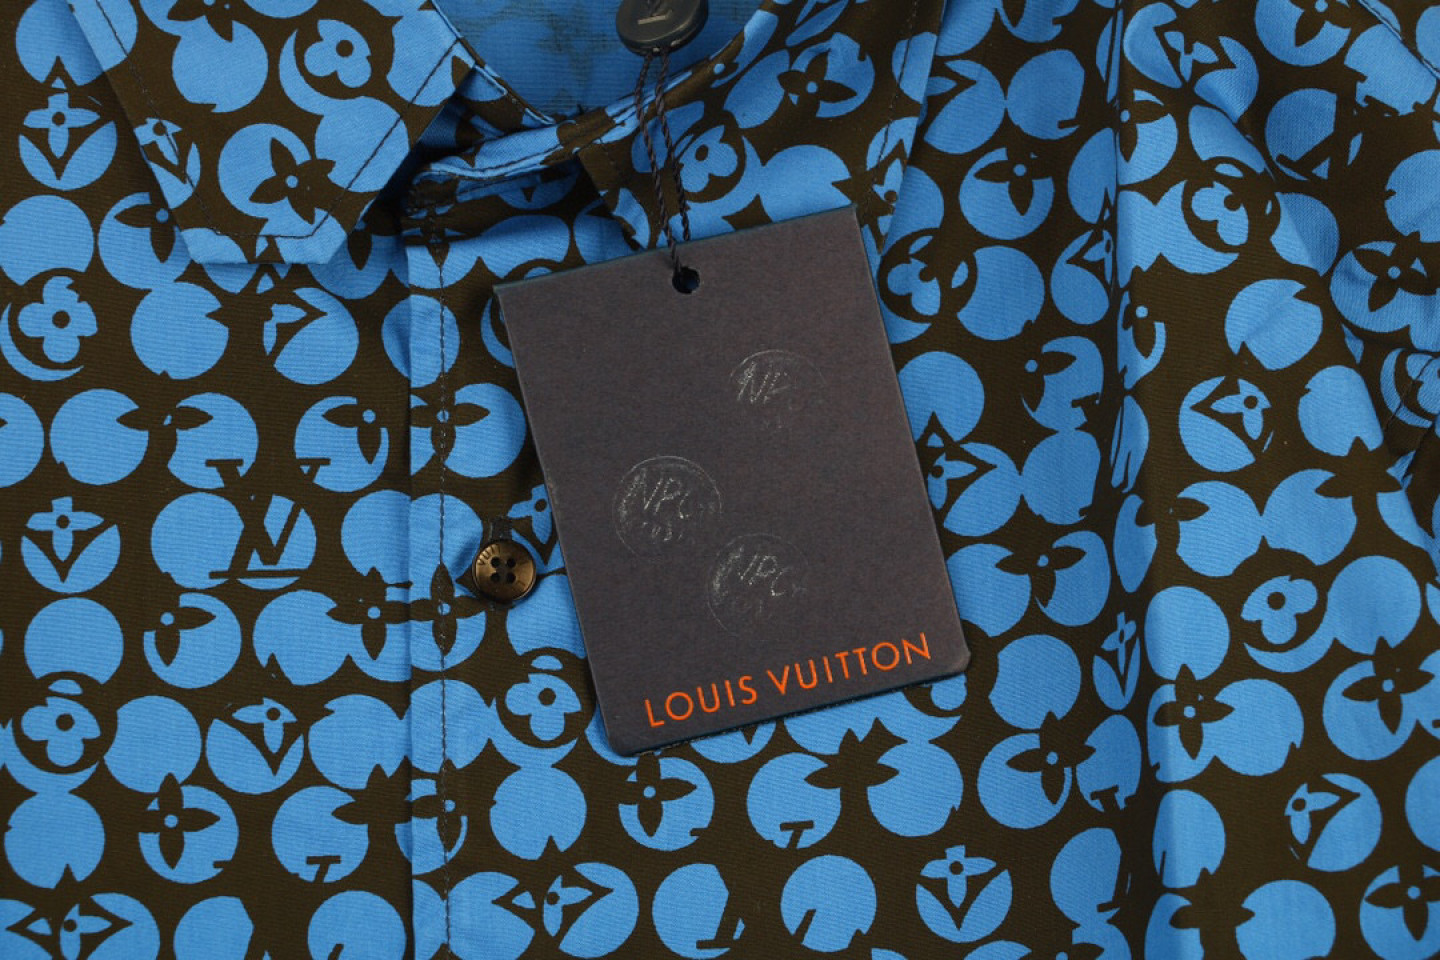 Shirt Louis Vuitton LV 19ss Ocean Blue Logo Print Long Sleeve Shirt 2 louis_vuitton_lv_19ss_ocean_blue_logo_print_long_sleeve_shirt_2